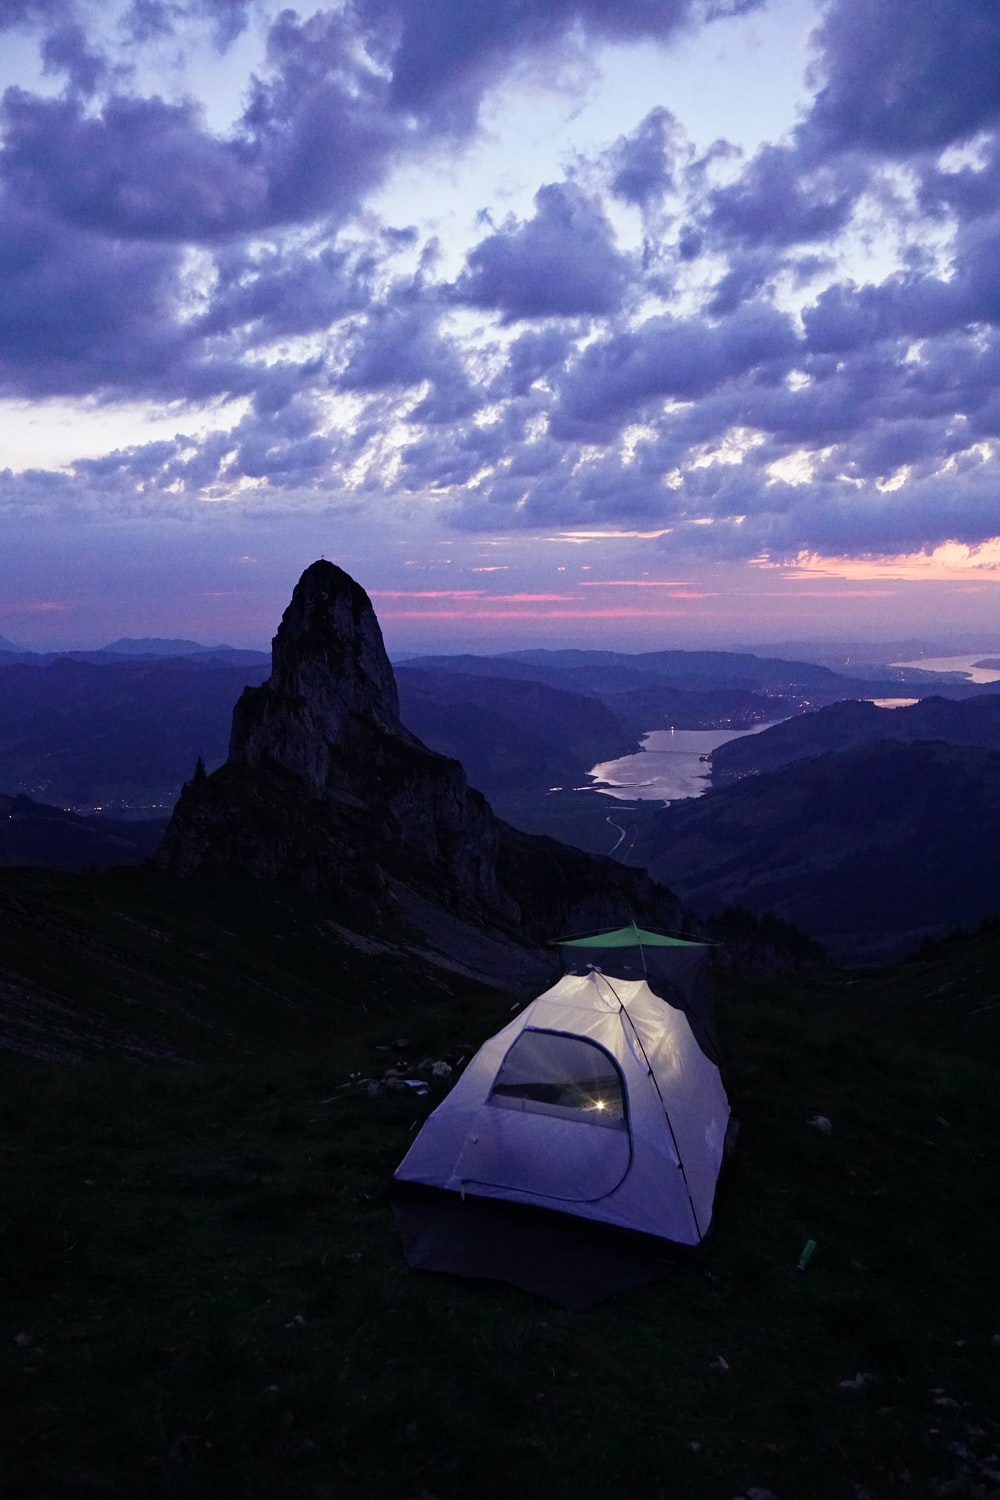 lighted tent on mountain top under clouded sky